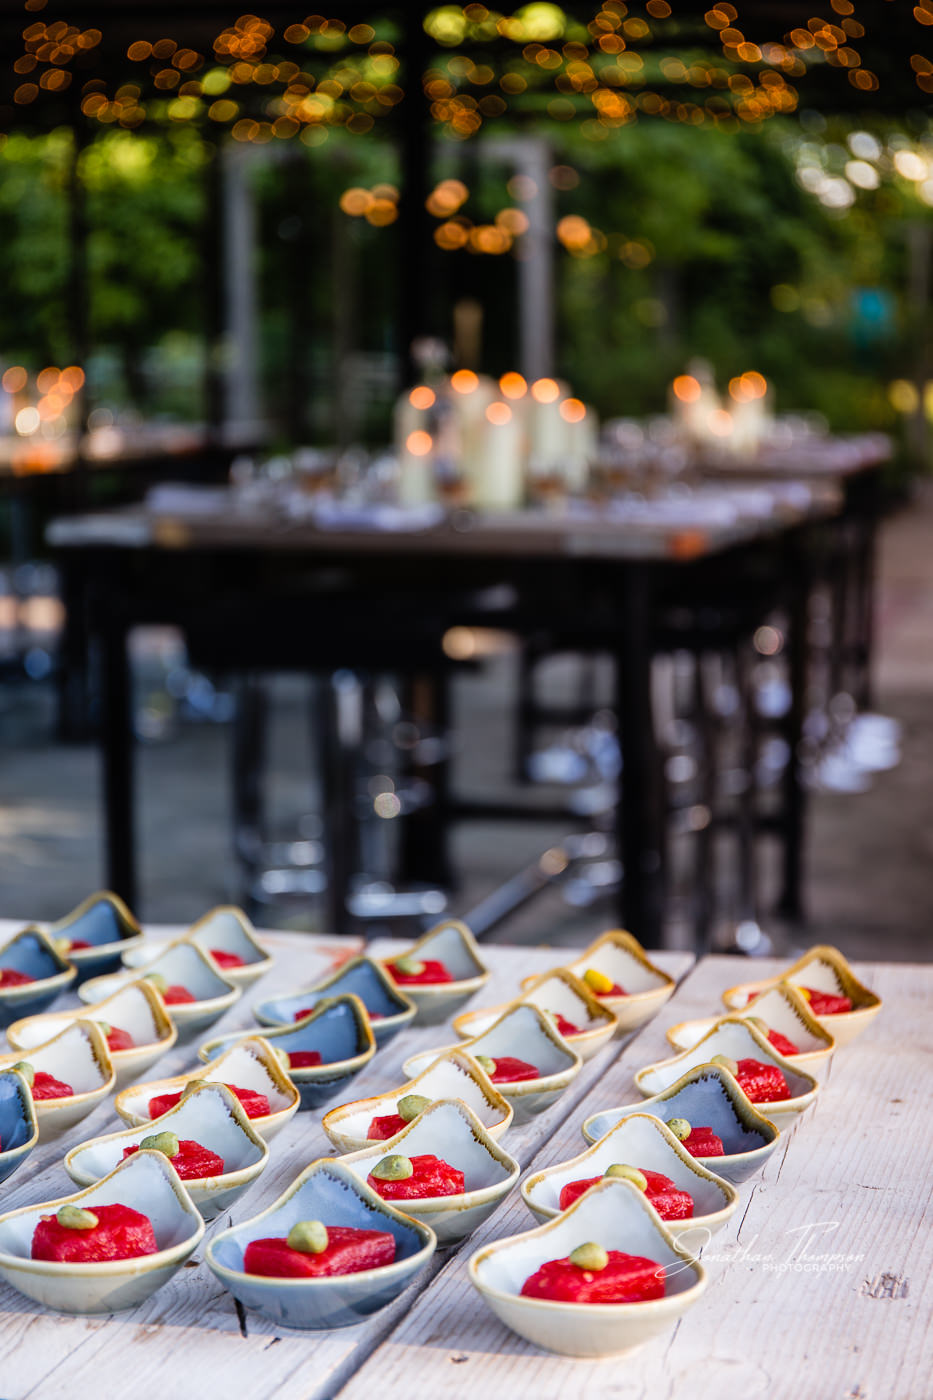 Small blue dishes are lined up with red and green food in an outdoor dining venue at Chester Zoo